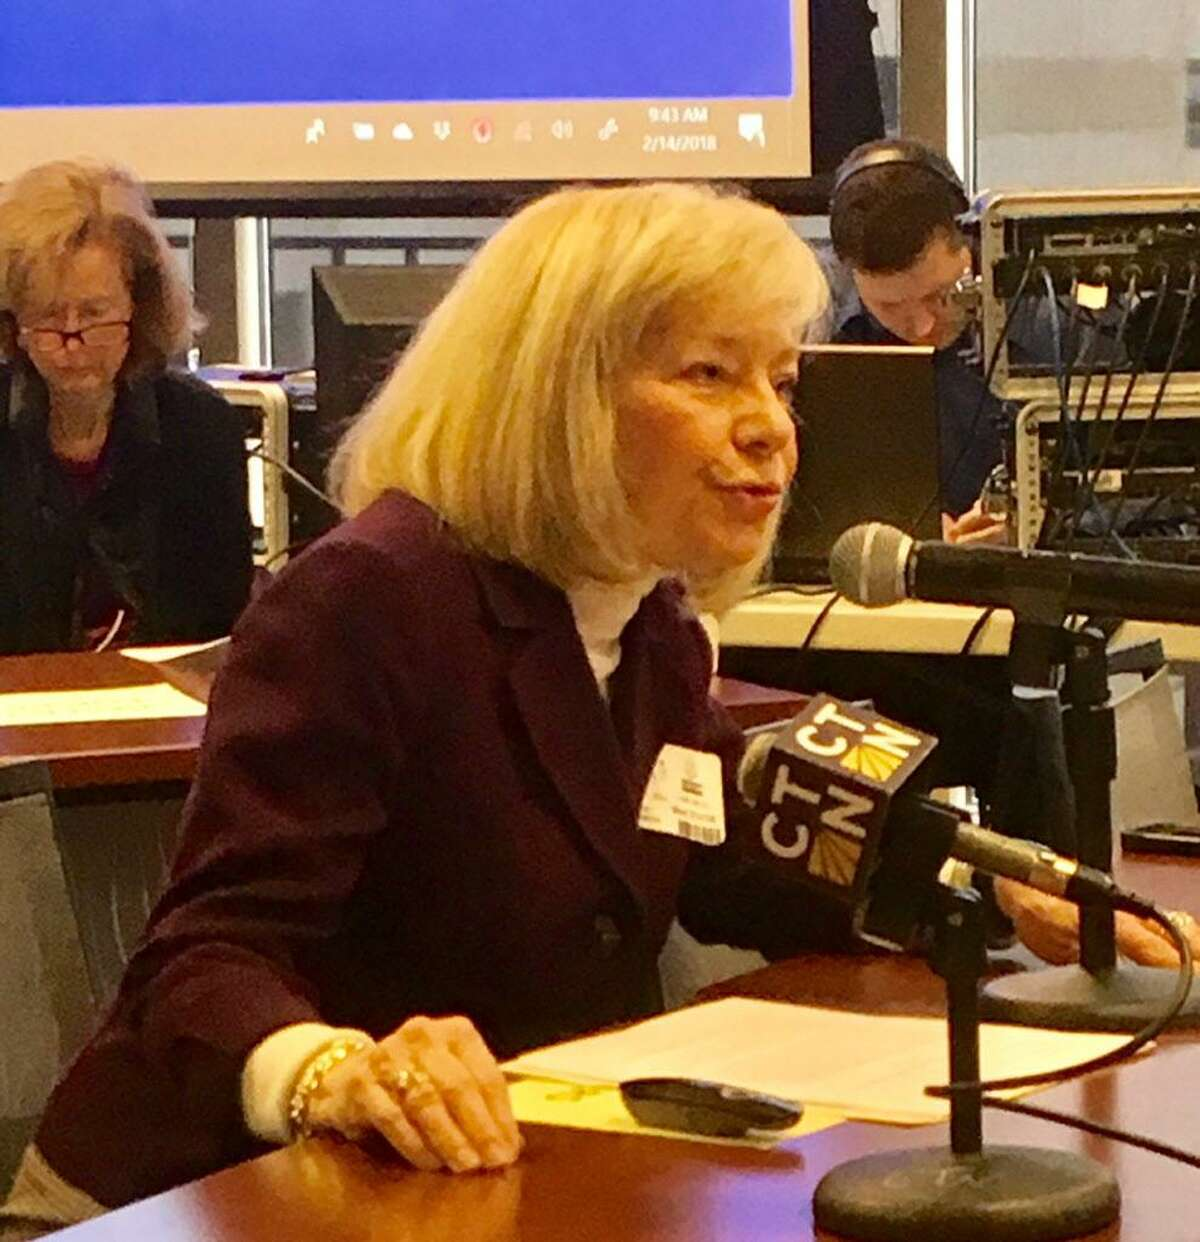 Stratford School Supt. Janet Robinson testifies before State Board of Education. Feb. 14, 2018